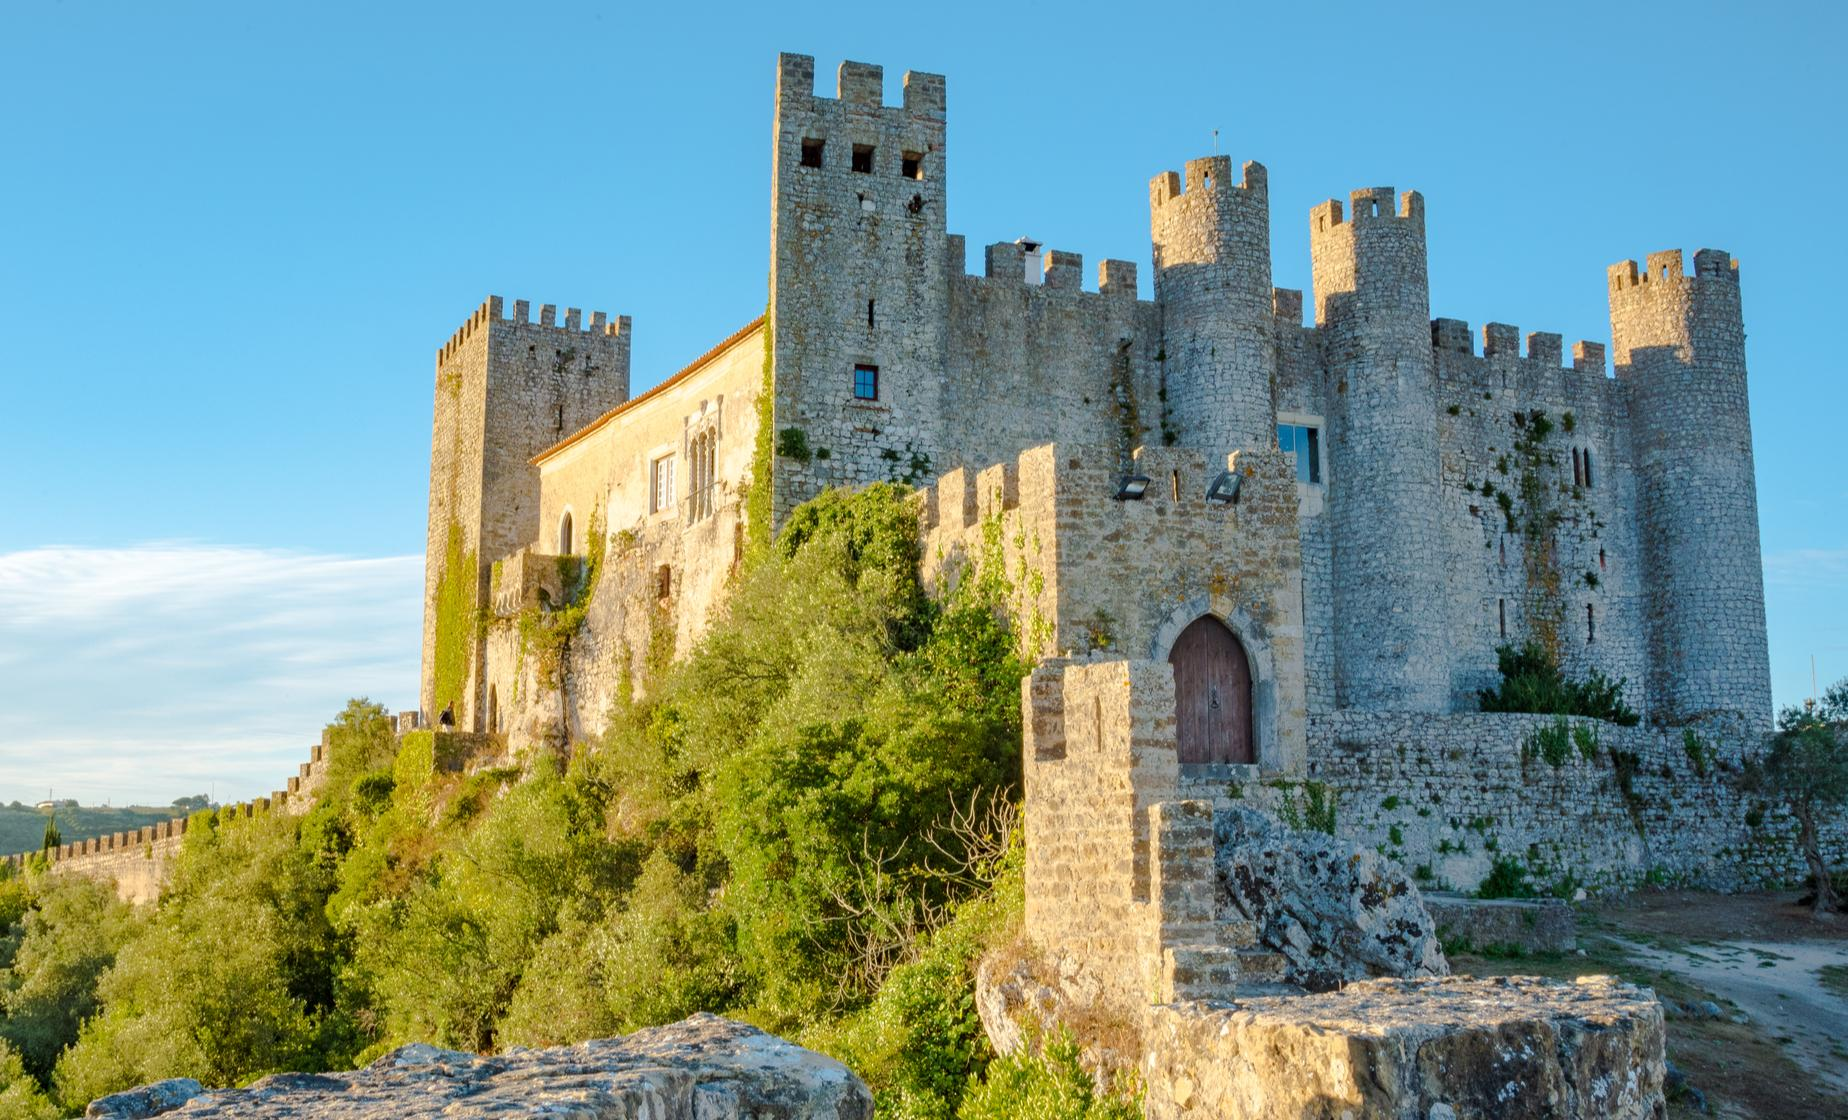 Full Day Tour to Obidos, Alcobaca, Batalha, Nazare and Fatima